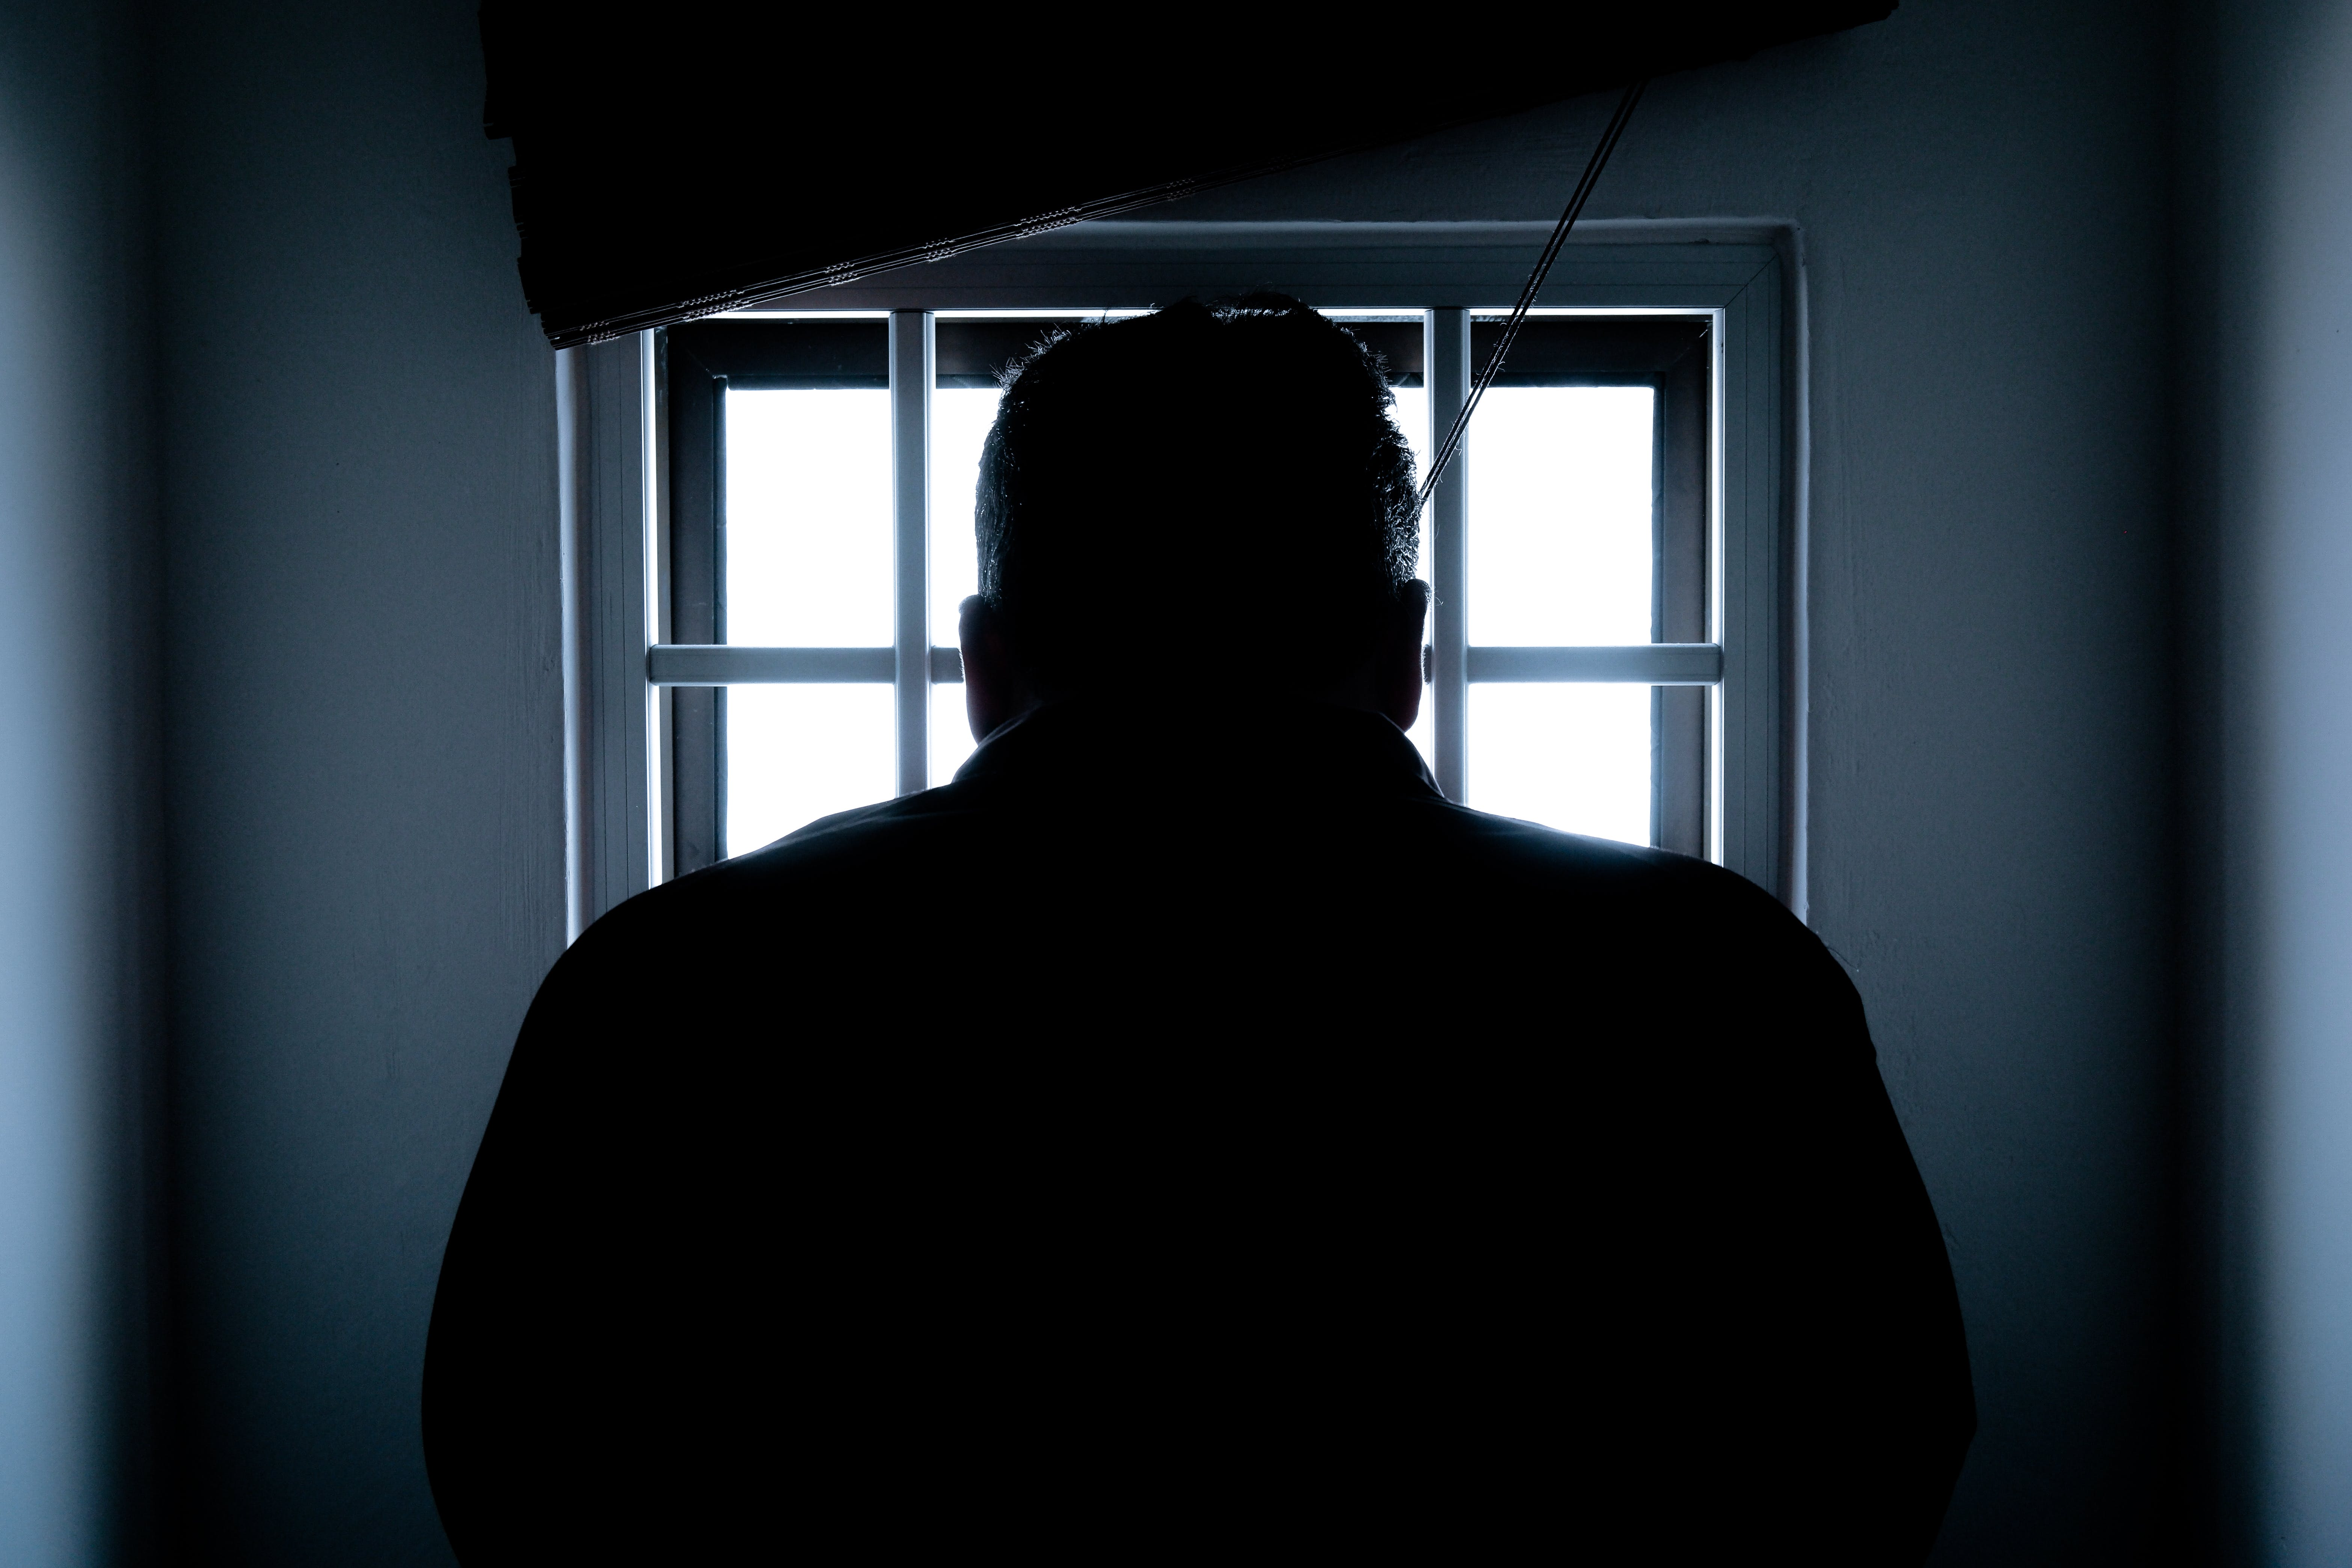 Rear View of a Silhouette Man in Window